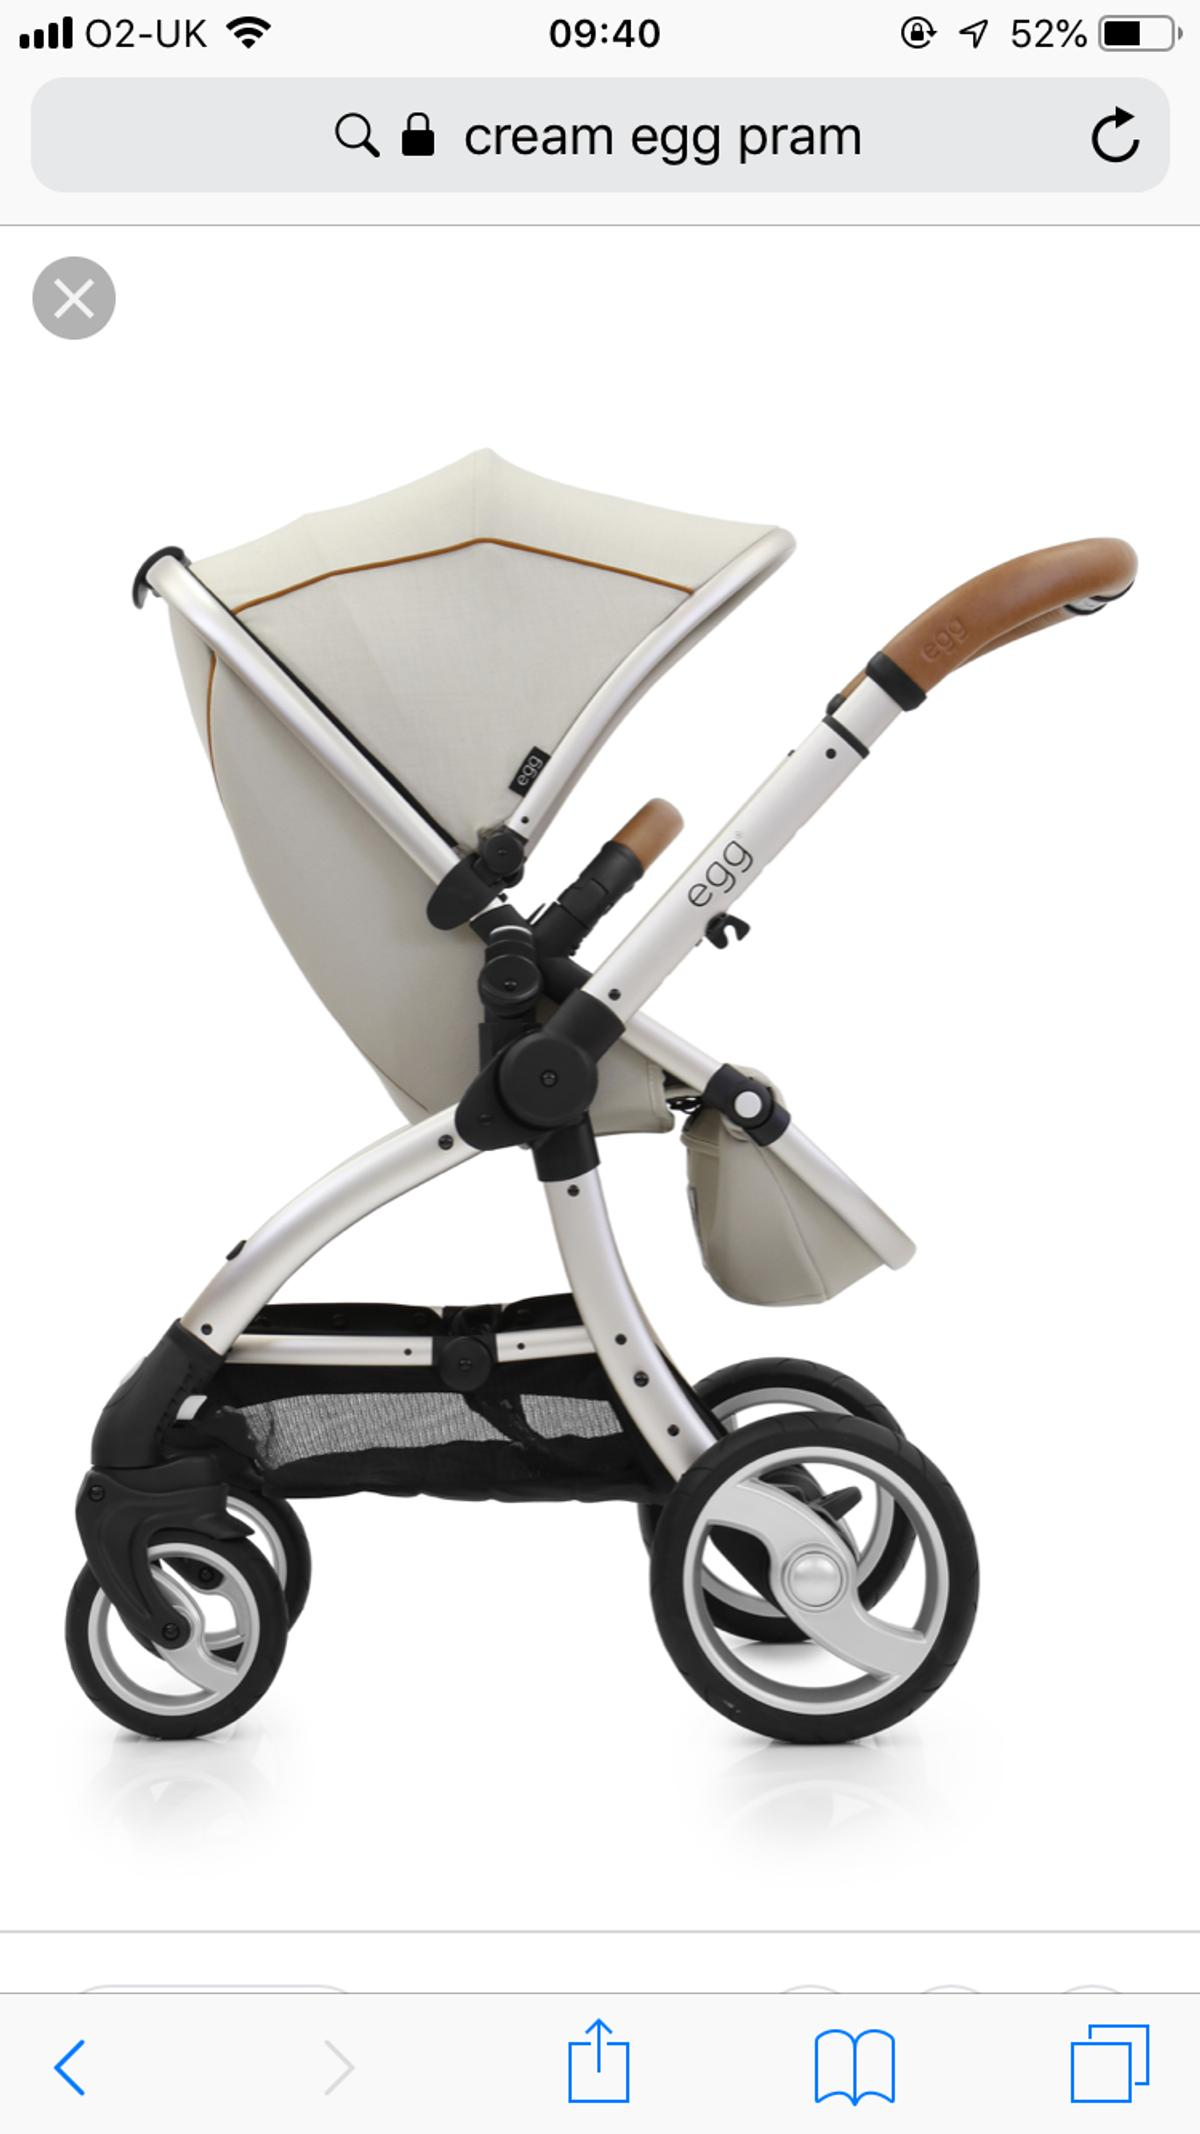 Egg Pram Gunmetal Egg Pram Cream In Cw2 Wistaston For 300 00 For Sale Shpock